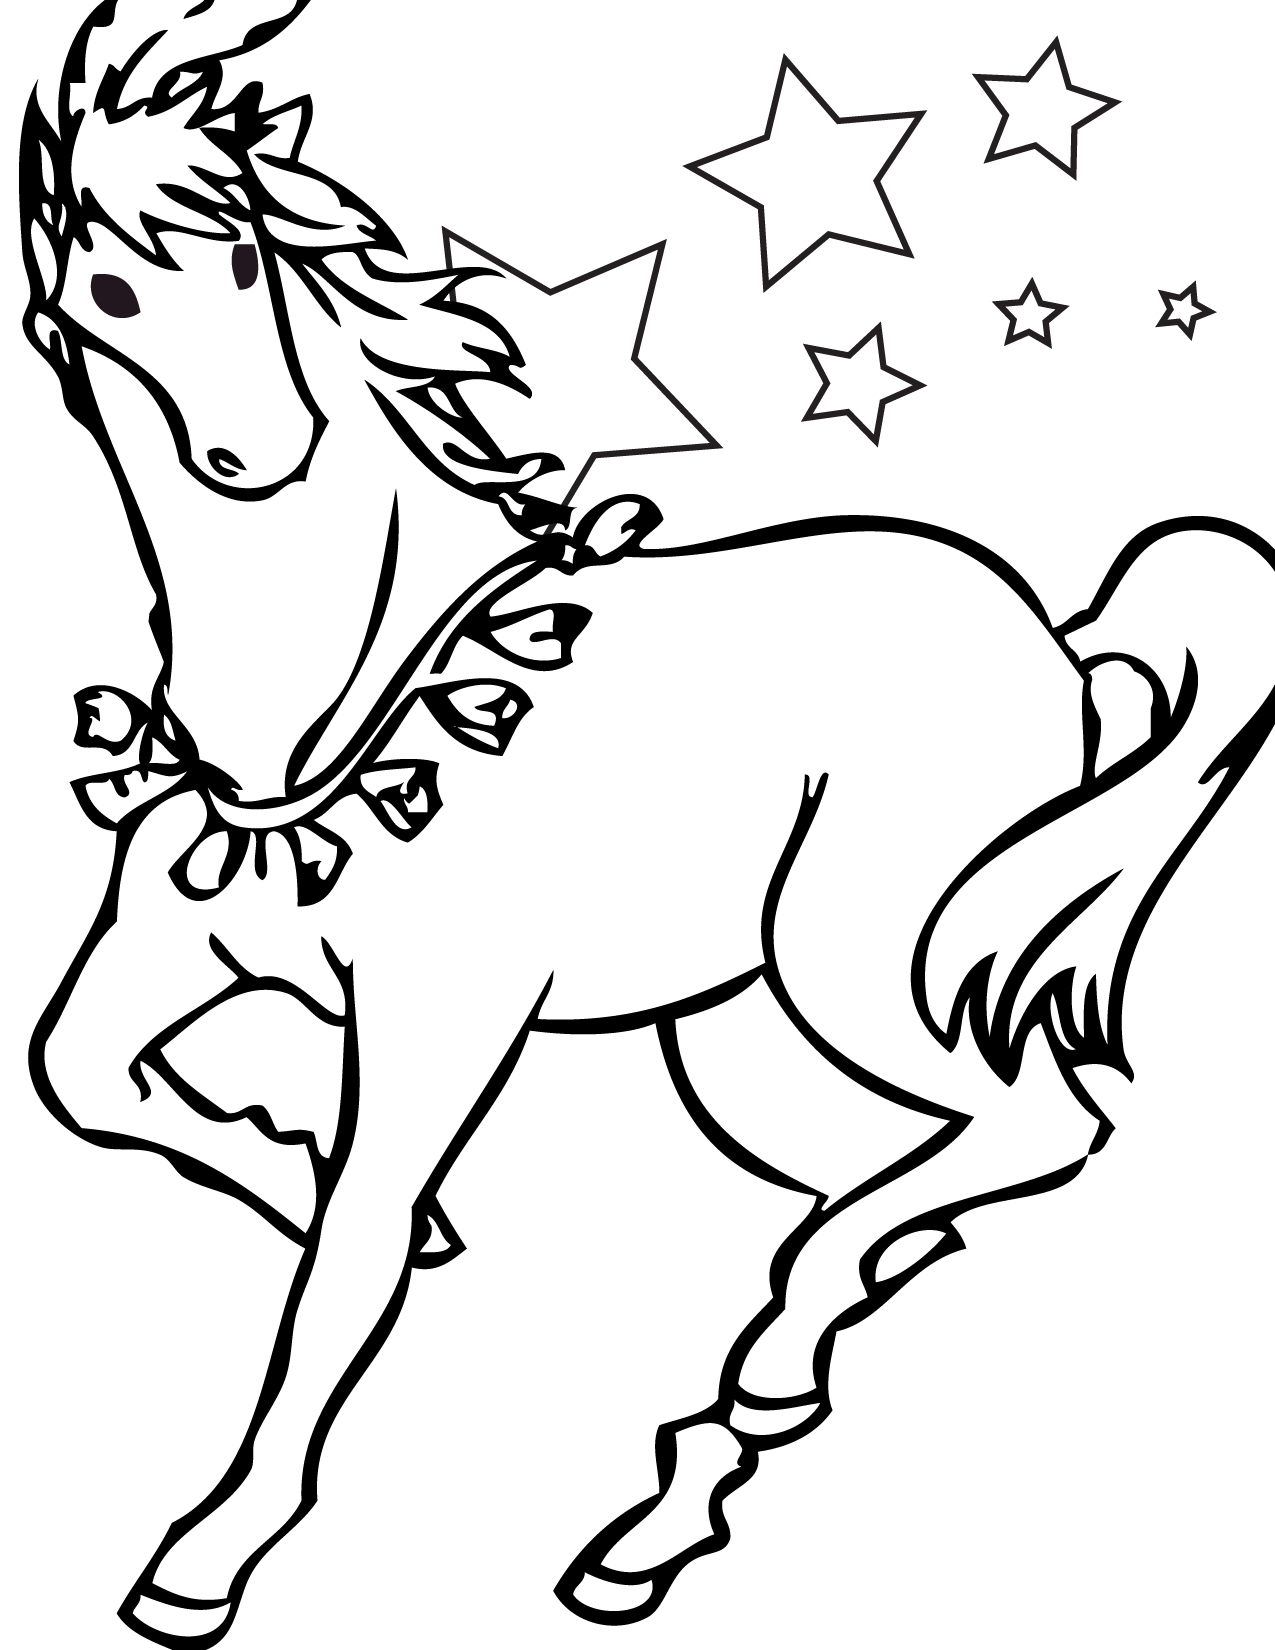 Horse Coloring Page Gorgeous Free Printable Horse Coloring Pages For Kids Design Inspiration